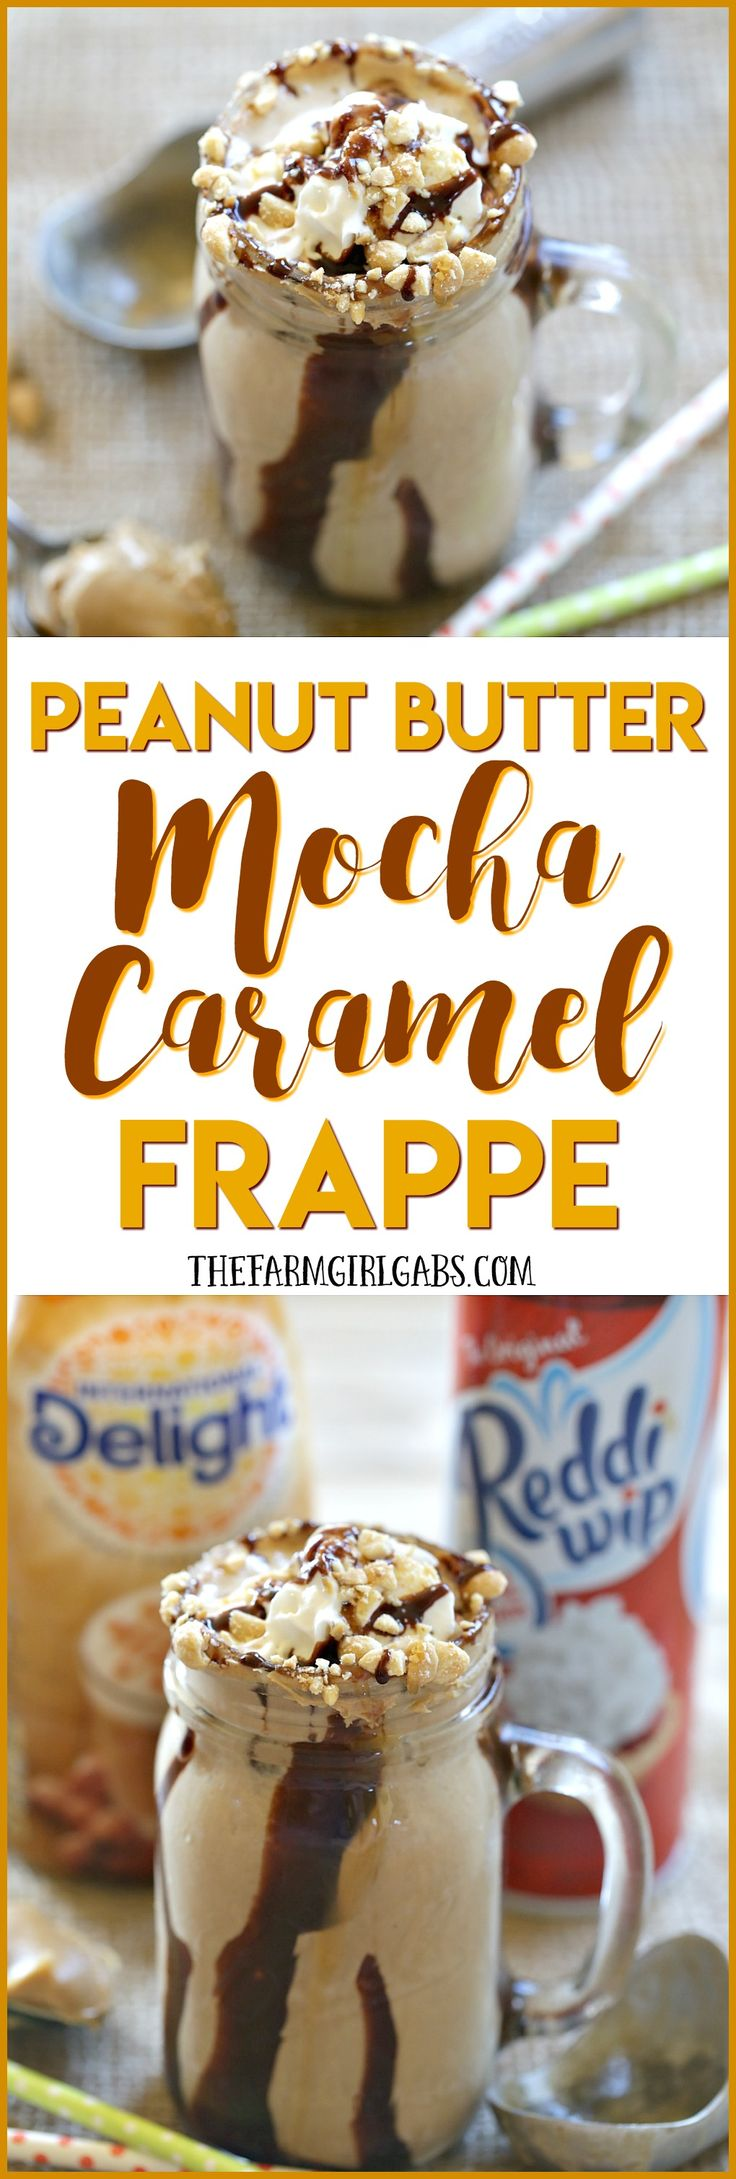 Ready for a cool and refreshing drink to celebrate summer? Try this delicious Peanut Butter Mocha Caramel Frappe! #FrappeYourWay #Ad @indelight @realreddiwip